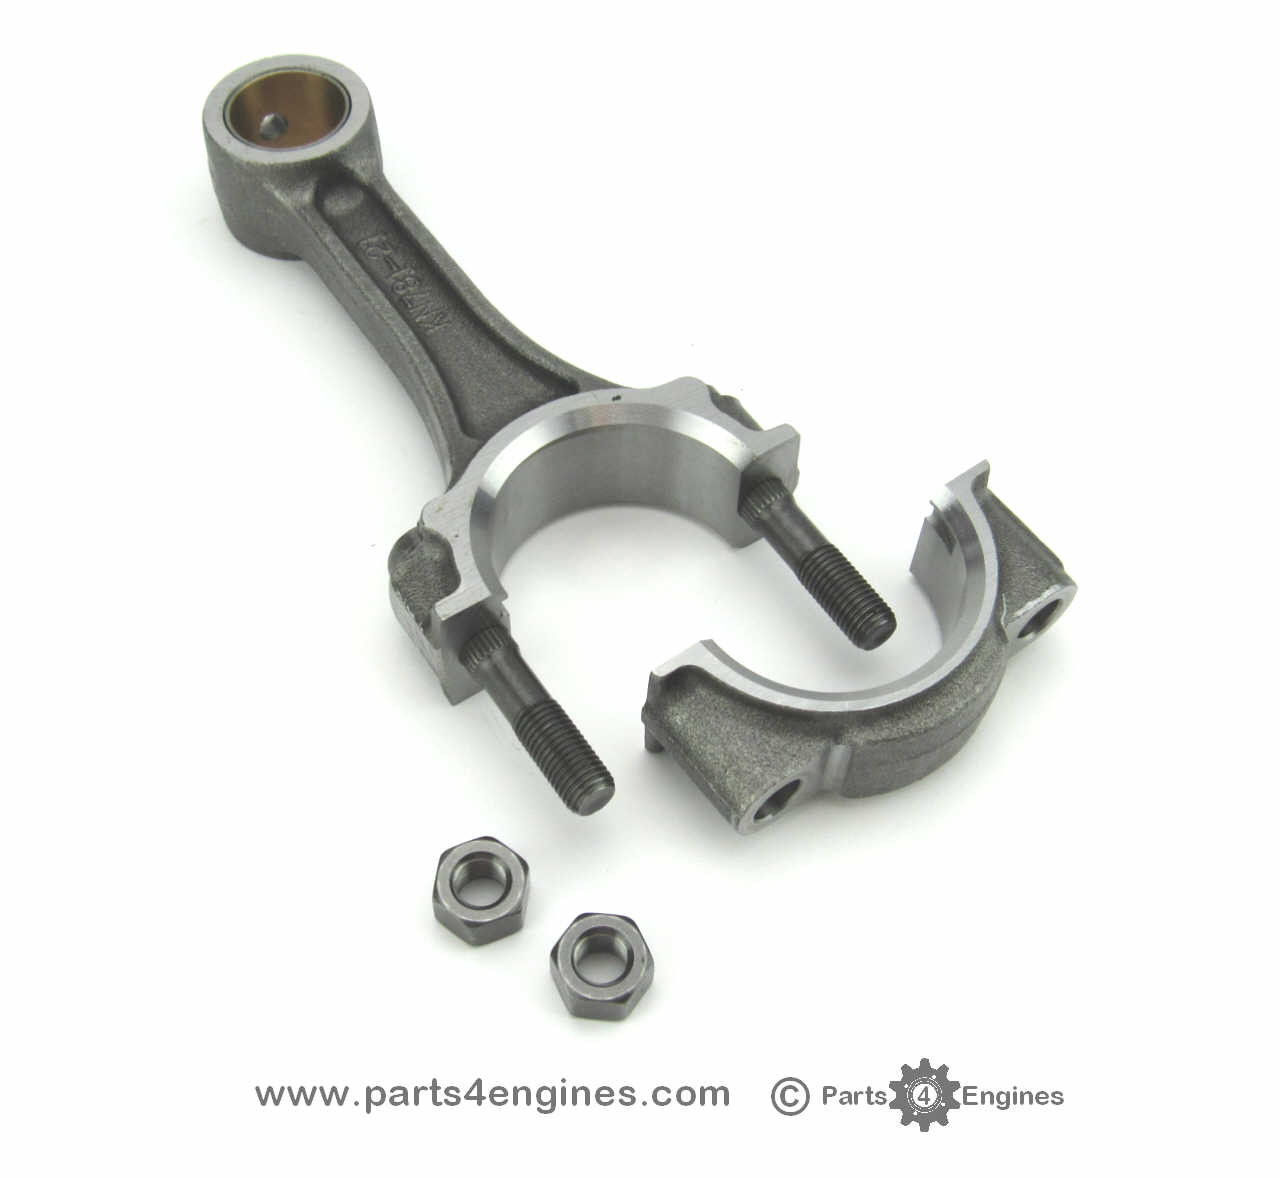 Volvo Penta MD2020 Connecting rod - parts4engines.com